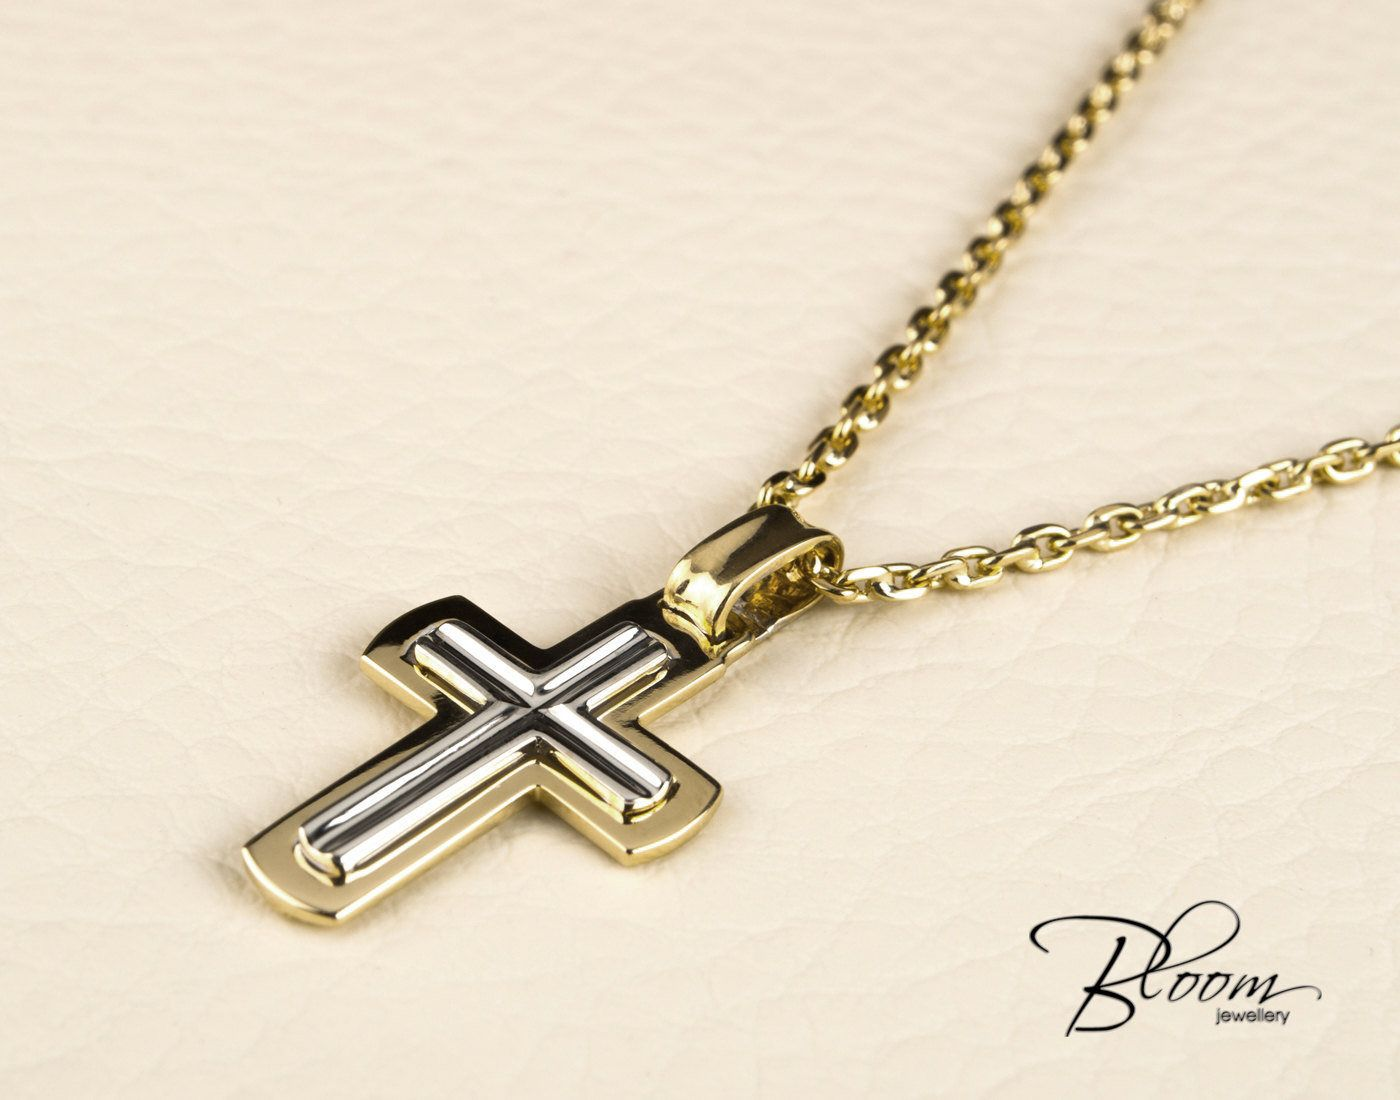 Mens cross necklace 14k white and yellow gold chain mens gold mens cross necklace 14k white and yellow gold chain mens gold necklace gold cross pendant with chain for men mens cross pendant with chain by bloomdiamonds aloadofball Choice Image